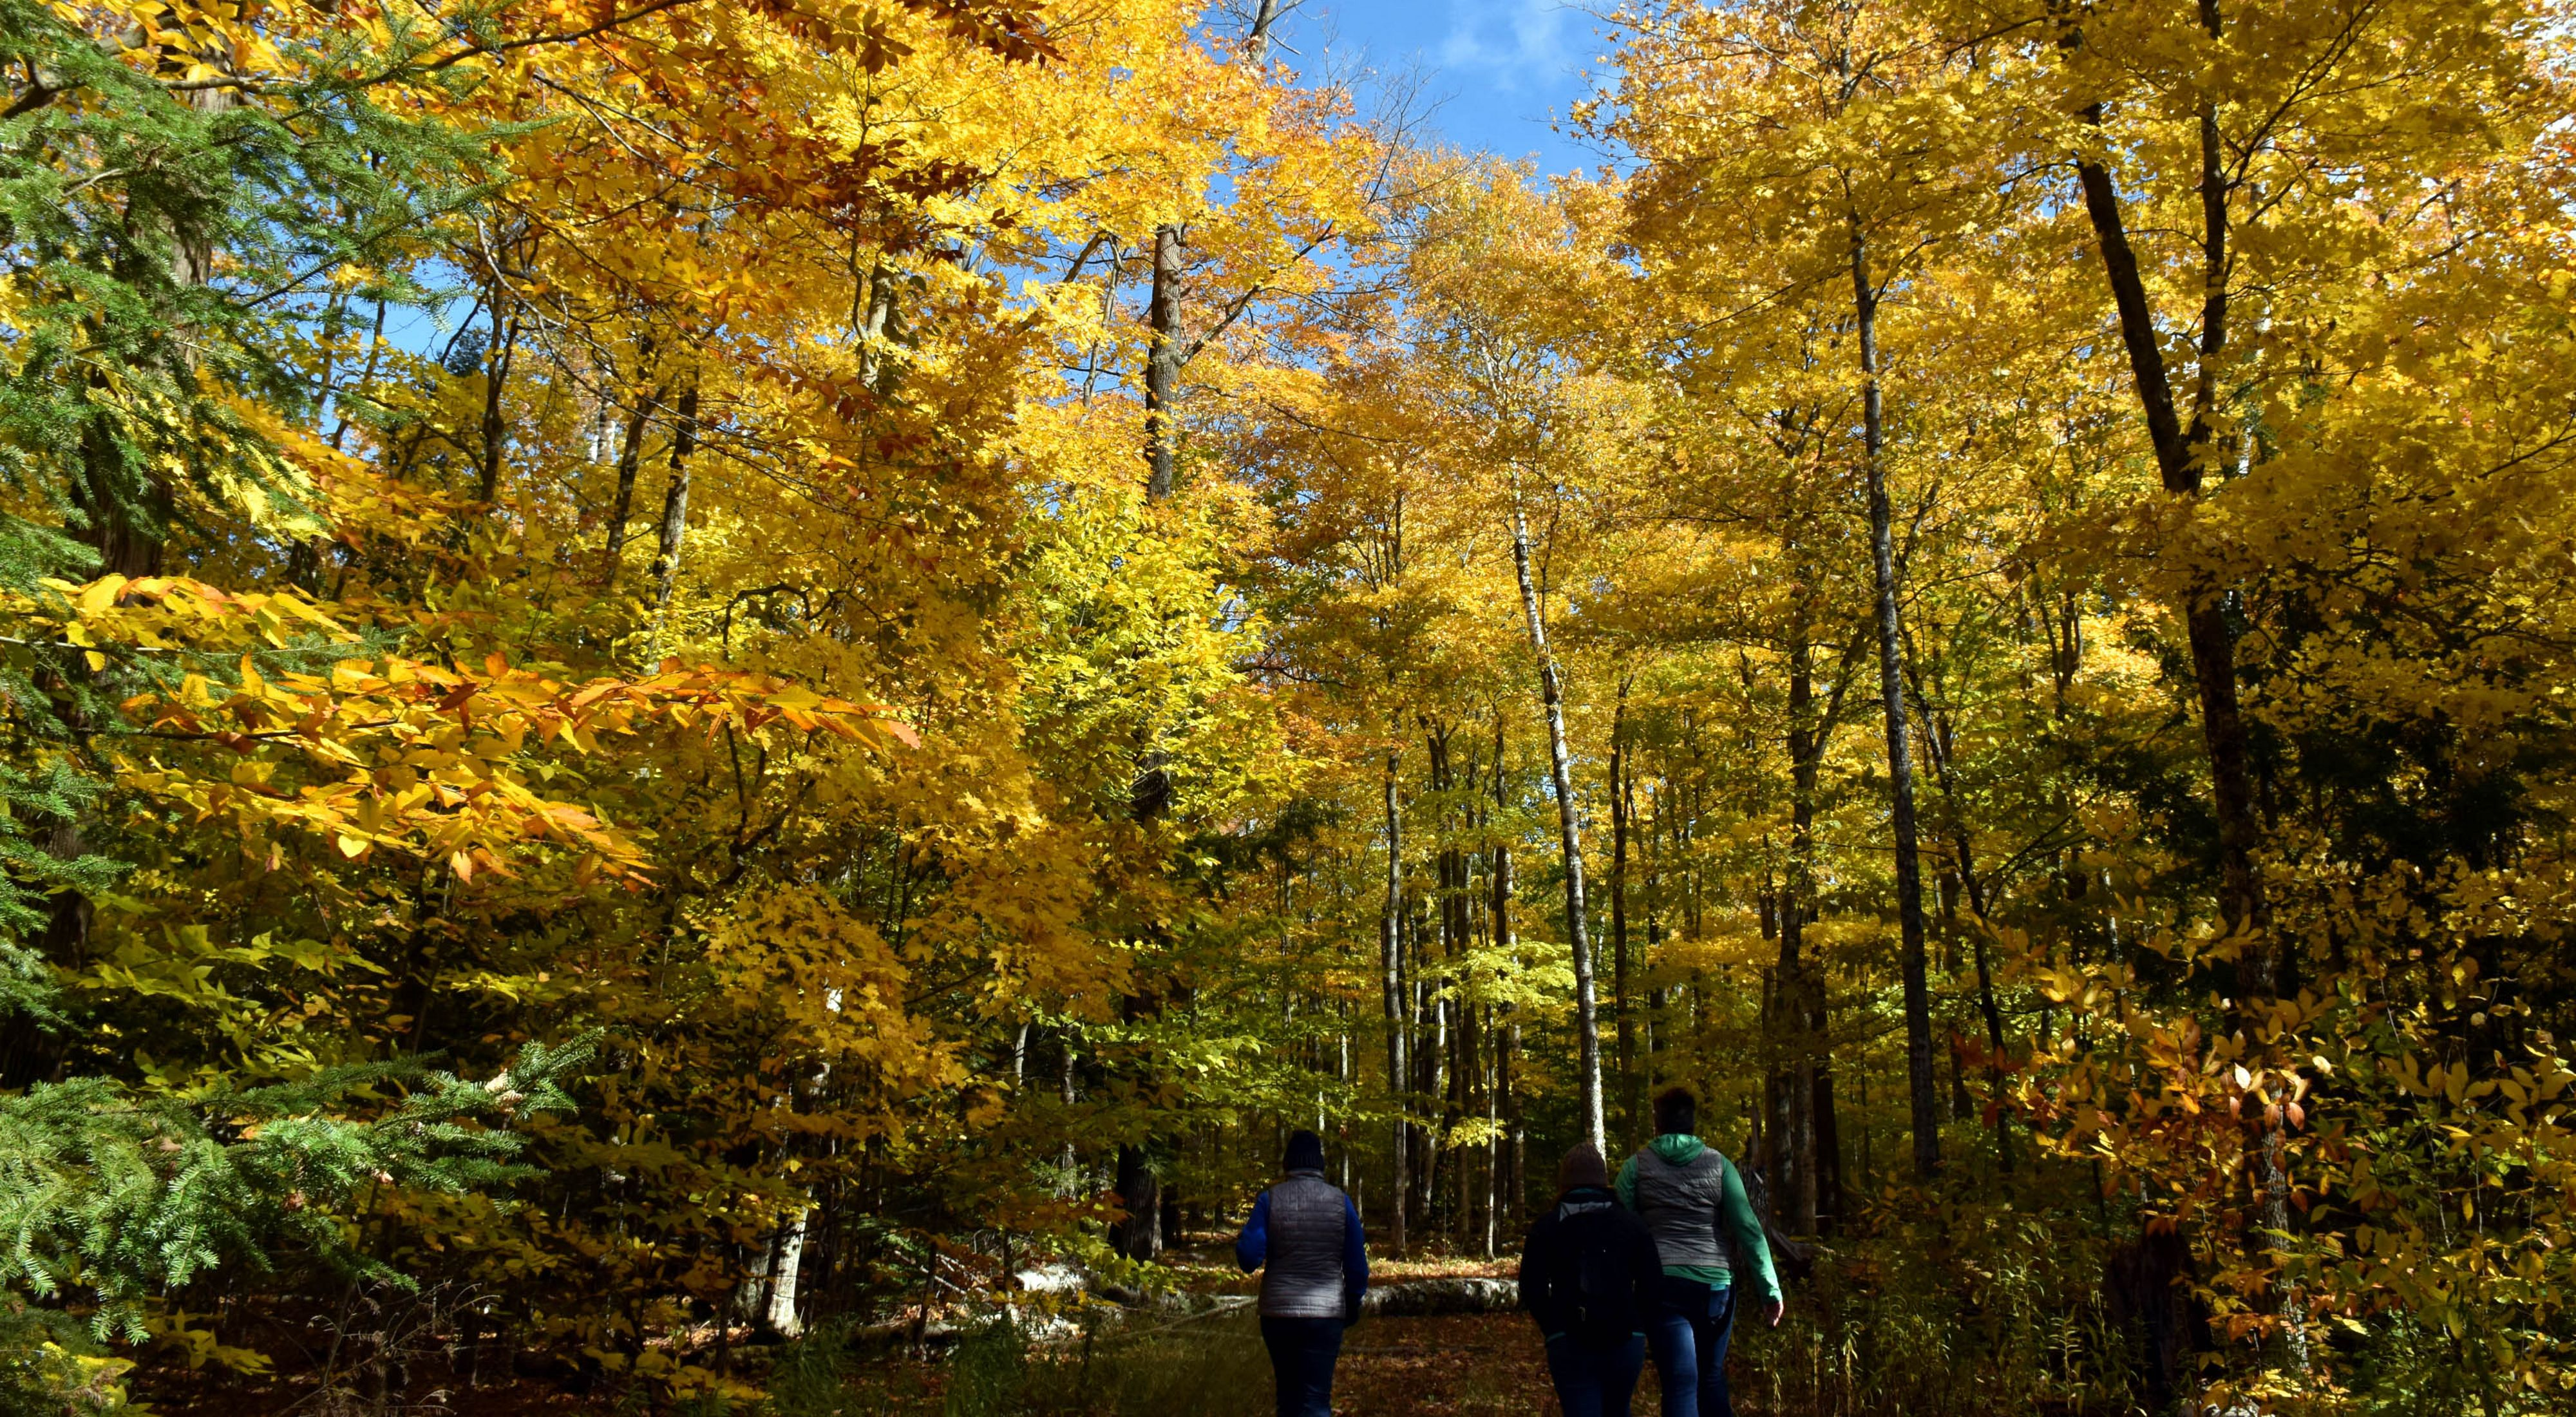 Three hikers walking on a trail through a forest in the fall where the leaves have turned to yellow and orange